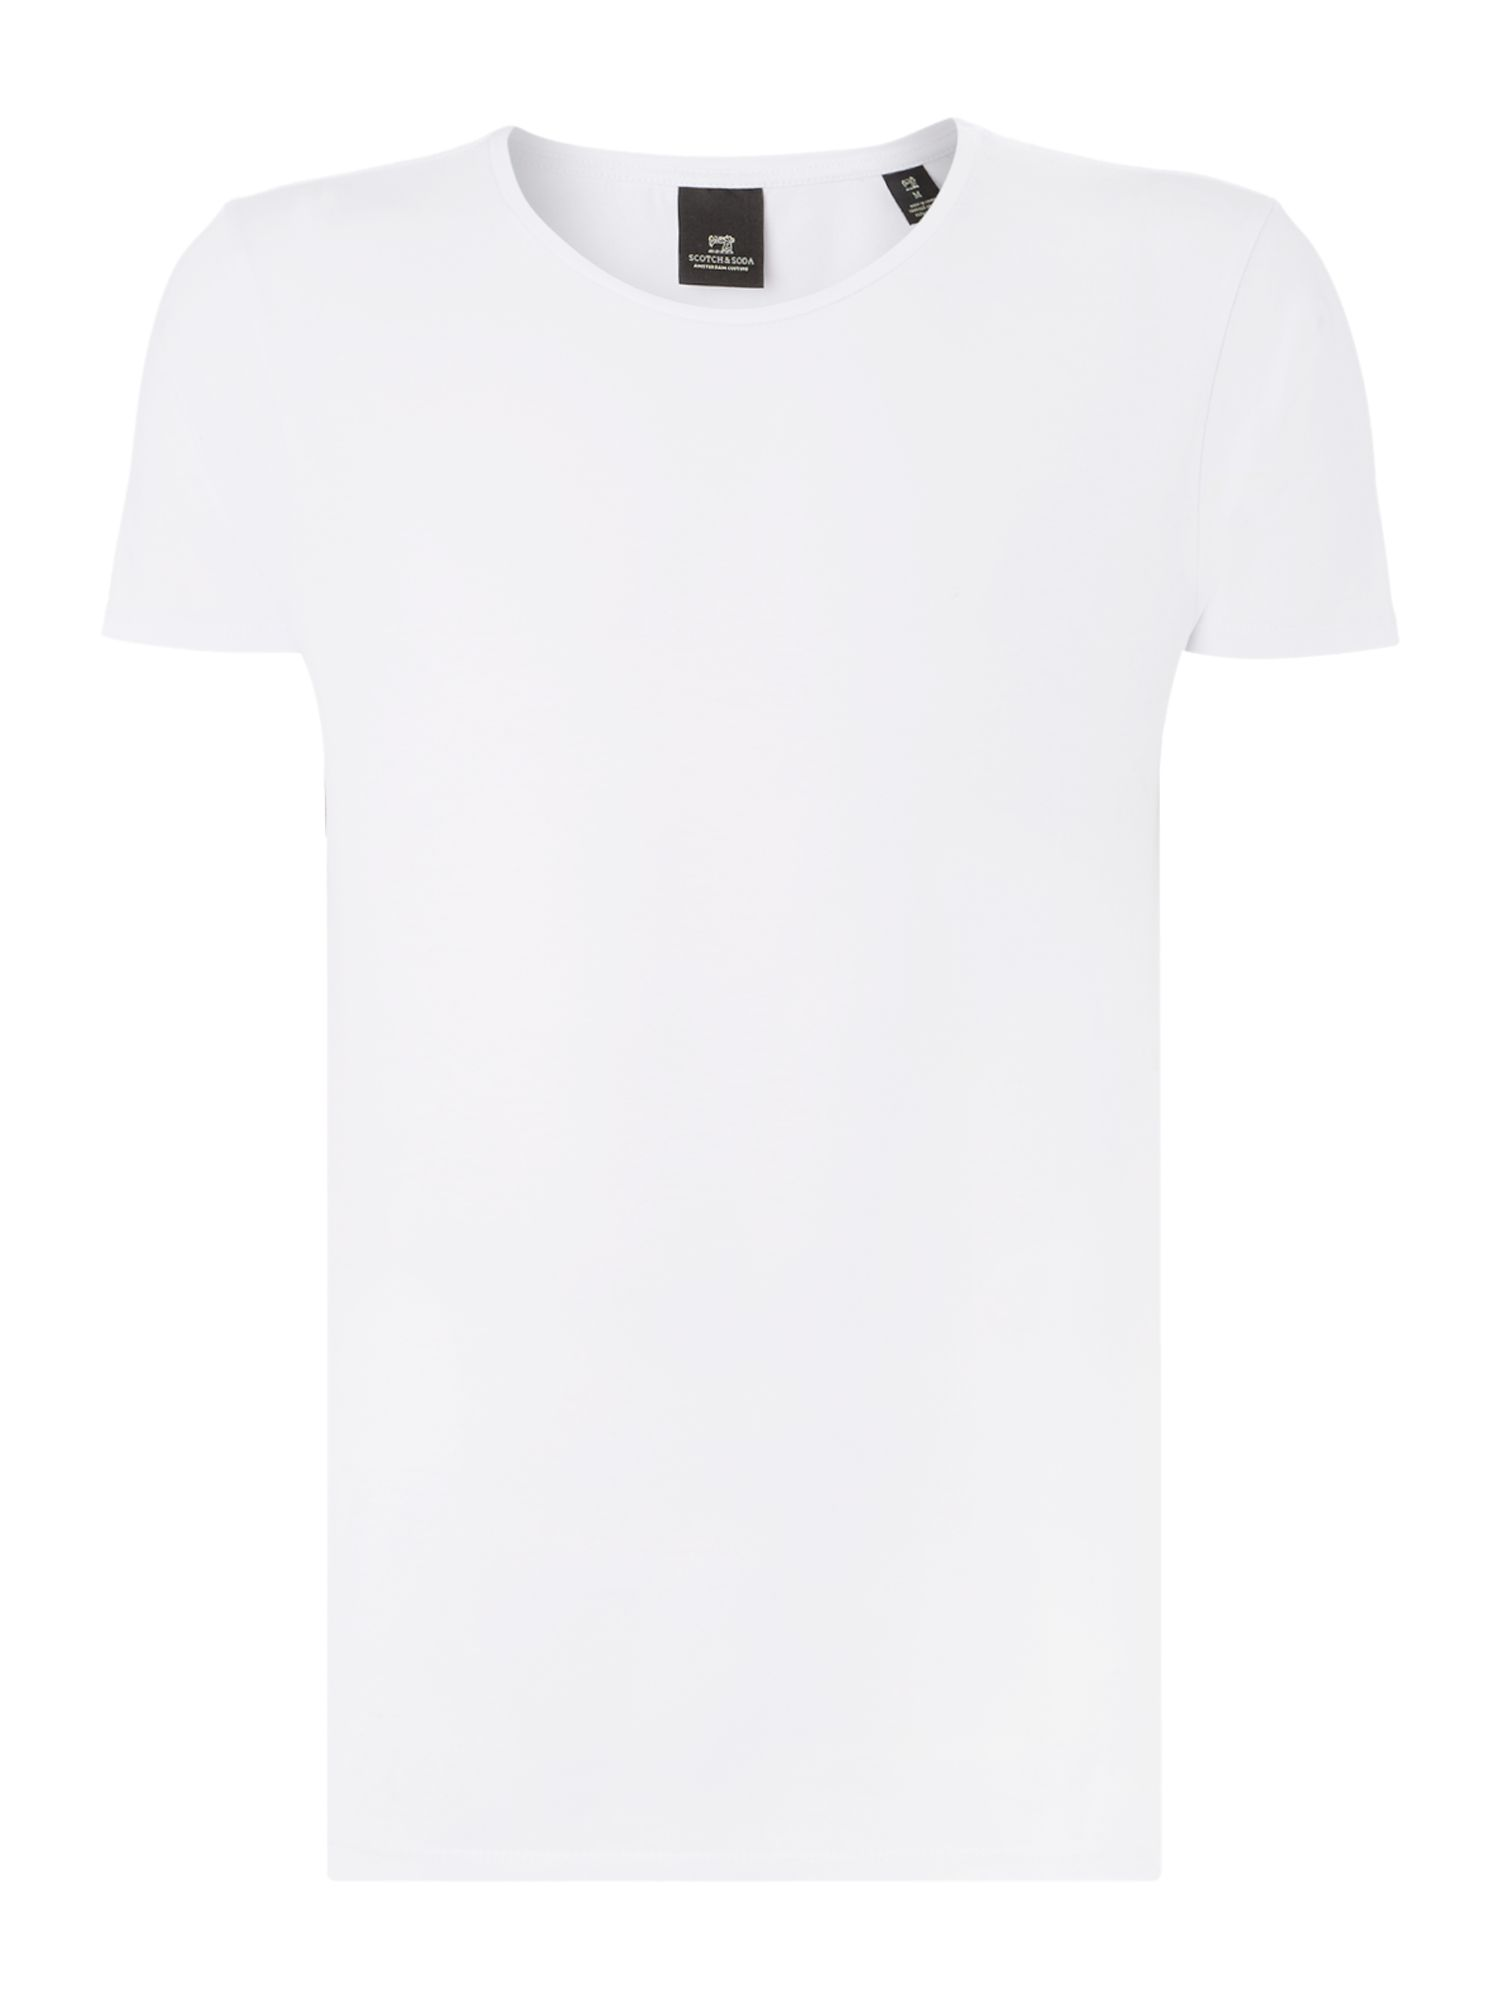 Men's Scotch & Soda Classic crewneck tee, White